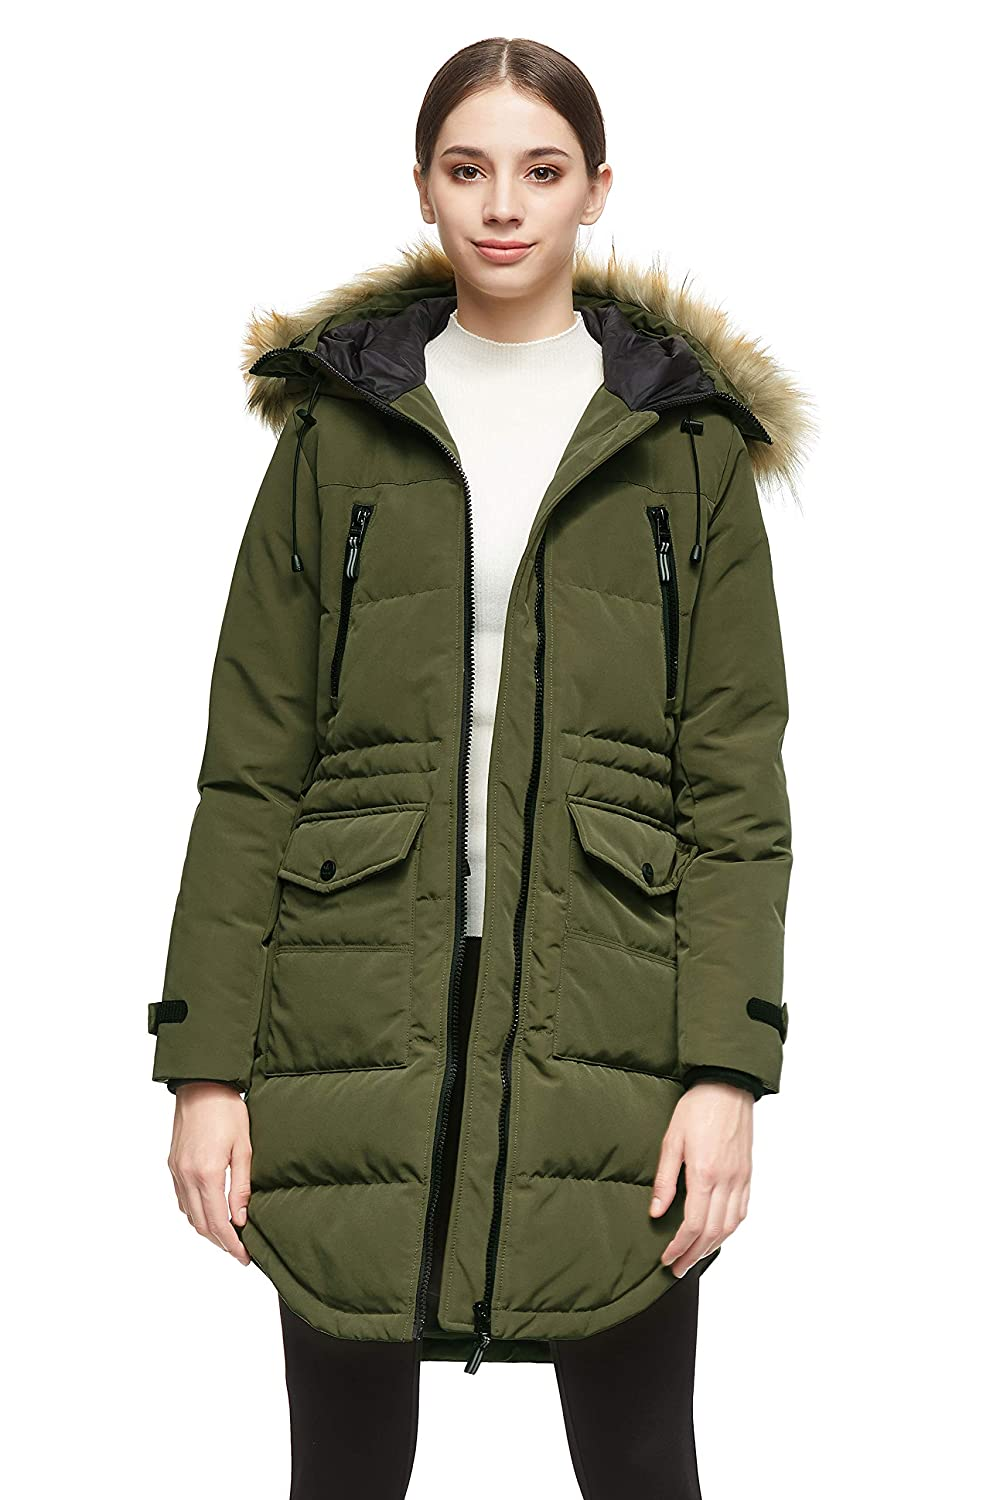 Orolay Women/'s Thickened Down Jacket Winter Warm Down Coat